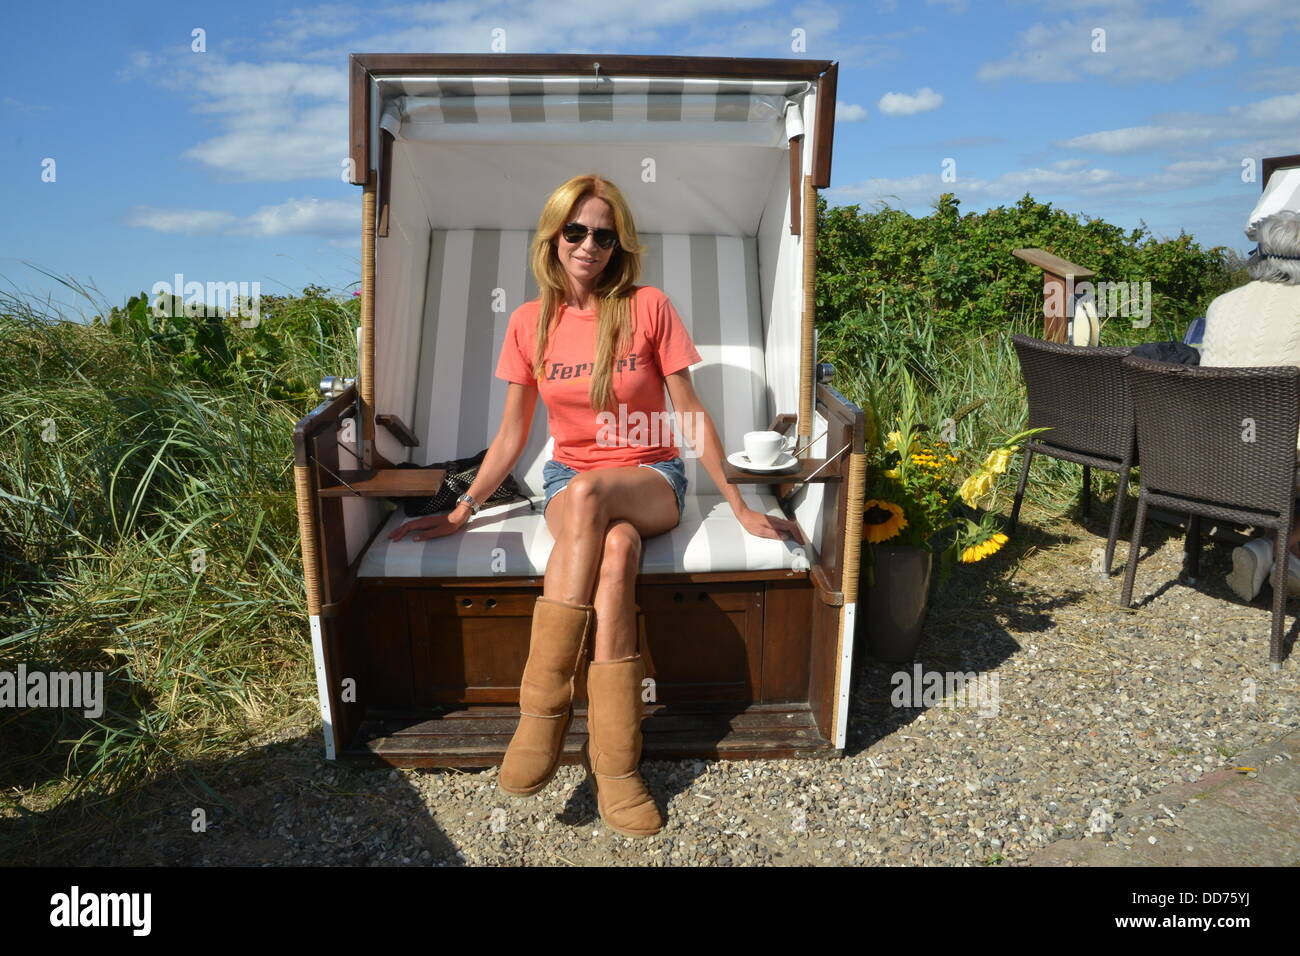 Best beach chair 2013 - German Actress Rosalie Van Breemen Poses In A Beach Chair During A Shooting In Kampen On The Island Of Sylt Germany 26 August 2013 Photo Justsylt